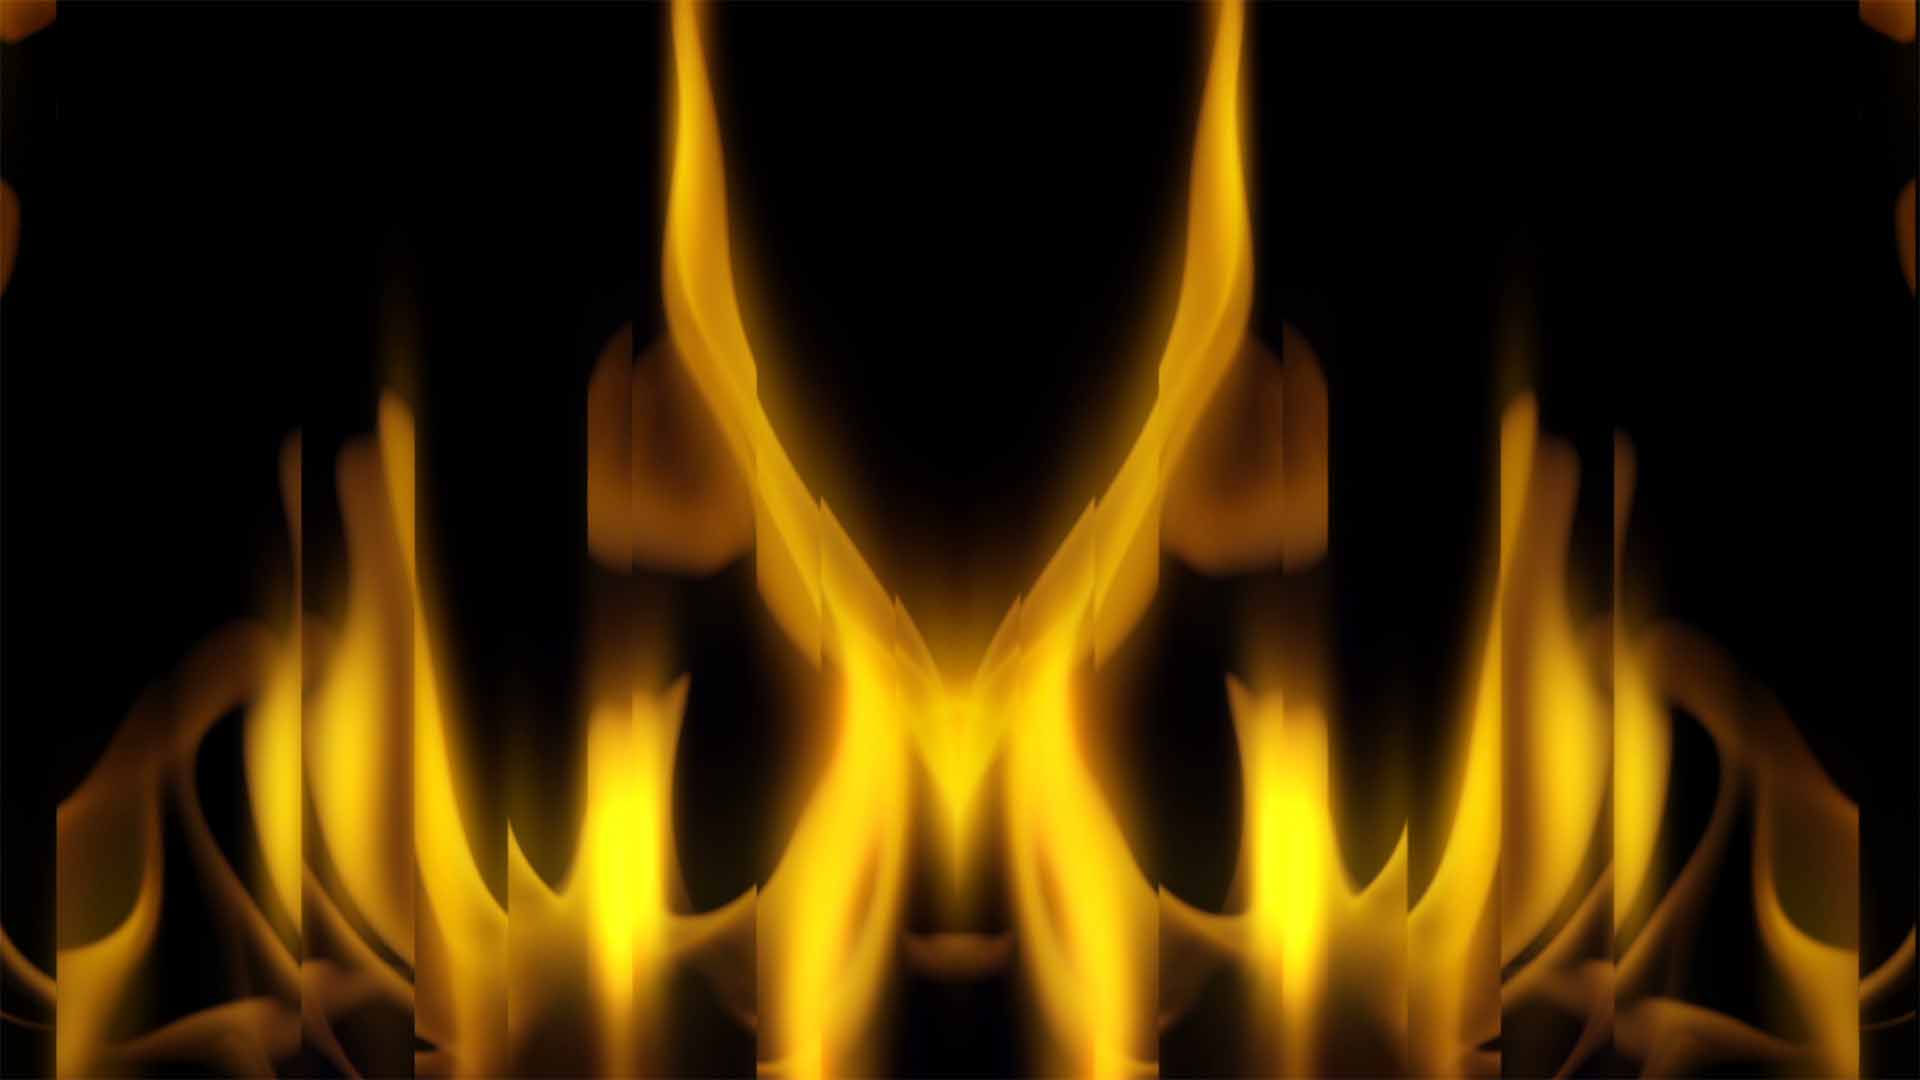 Fire_Flame_Video_Art_Animation_VJ_Loop